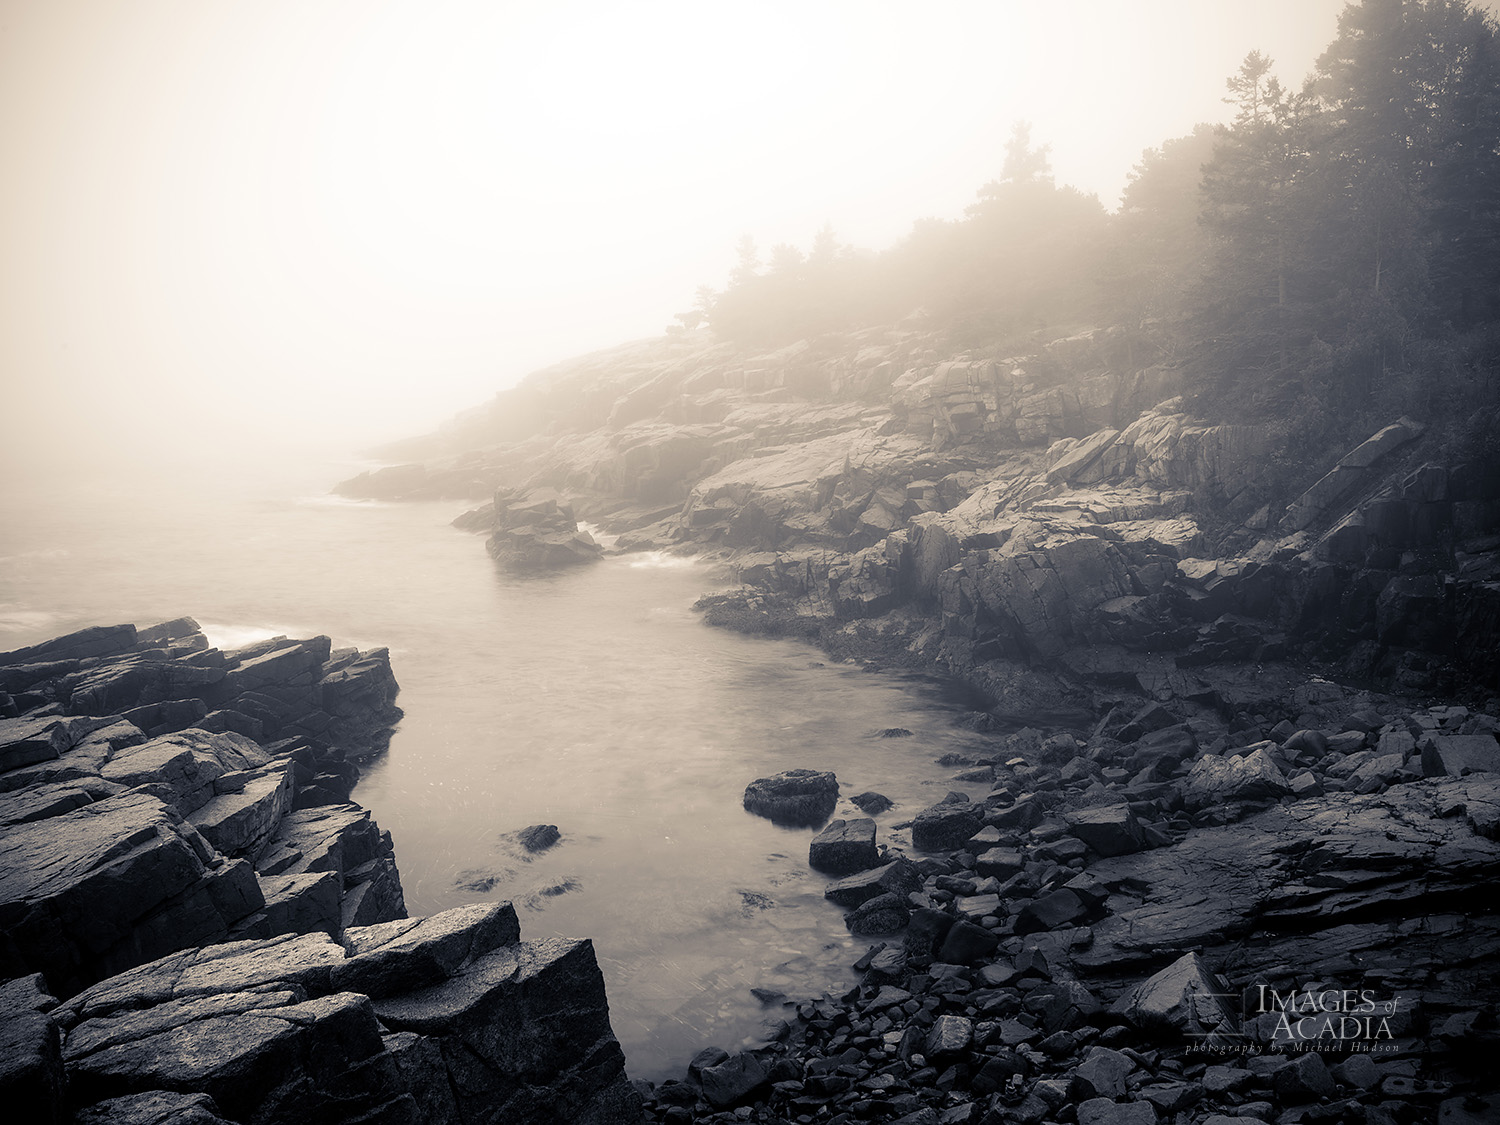 Early morning fog off the coast of Acadia